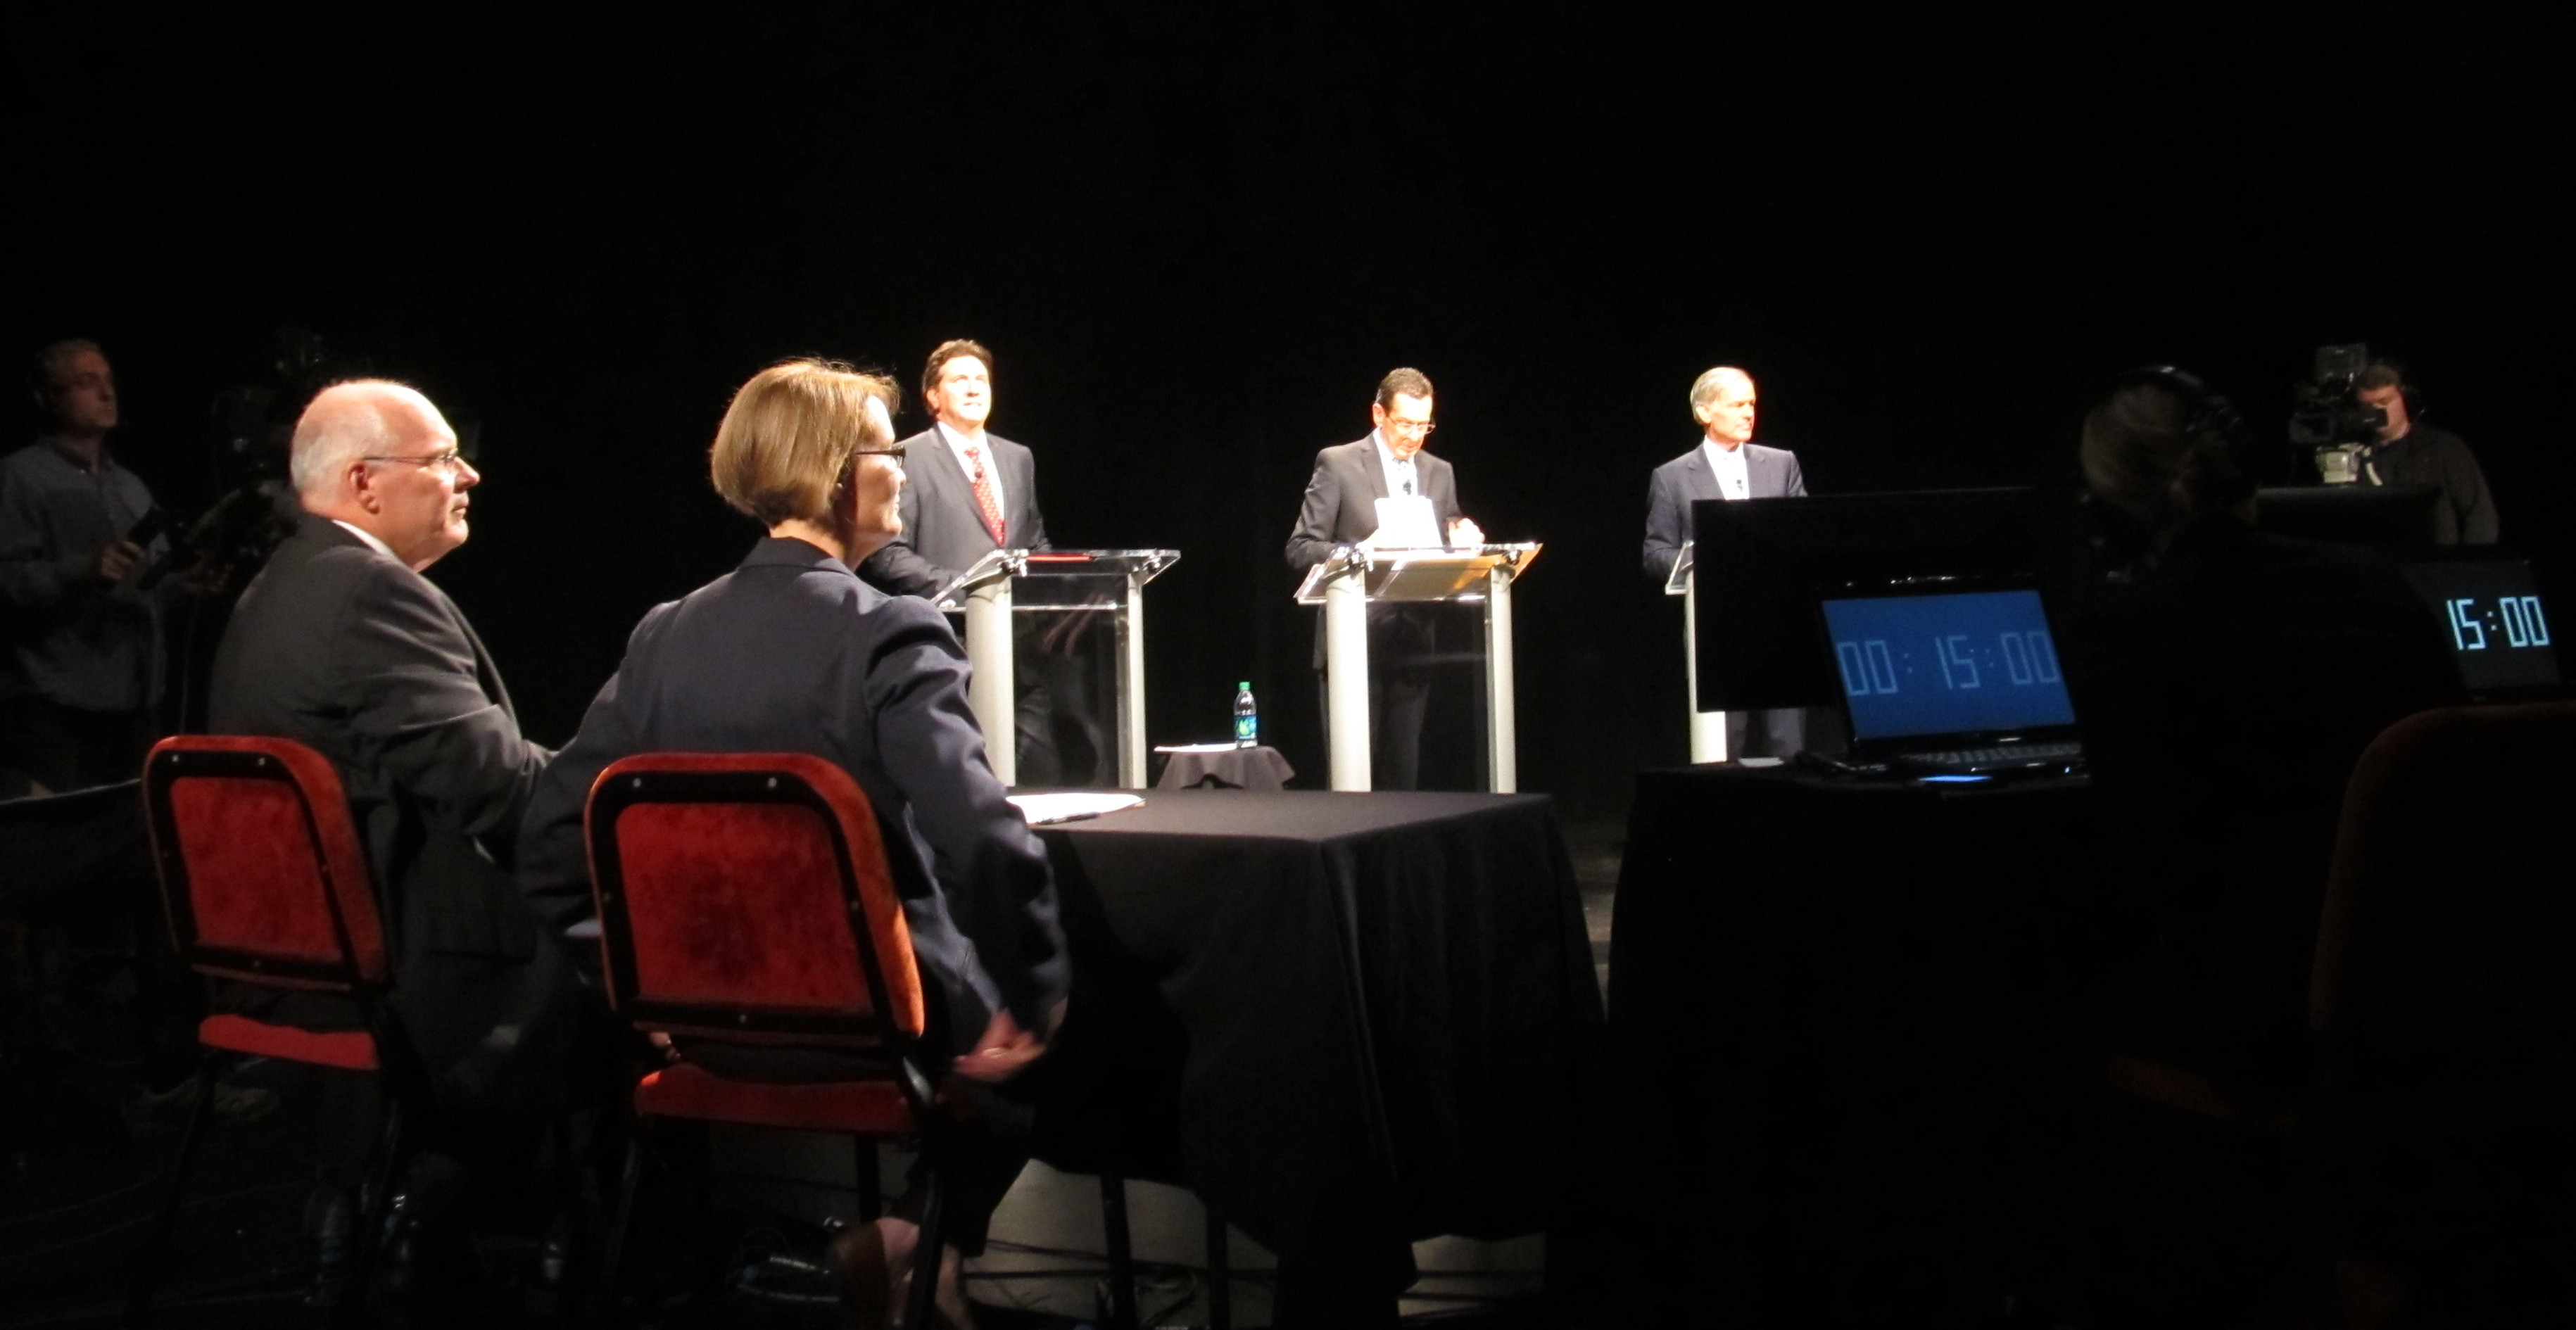 In 5th debate, Foley takes the 5th on climate change